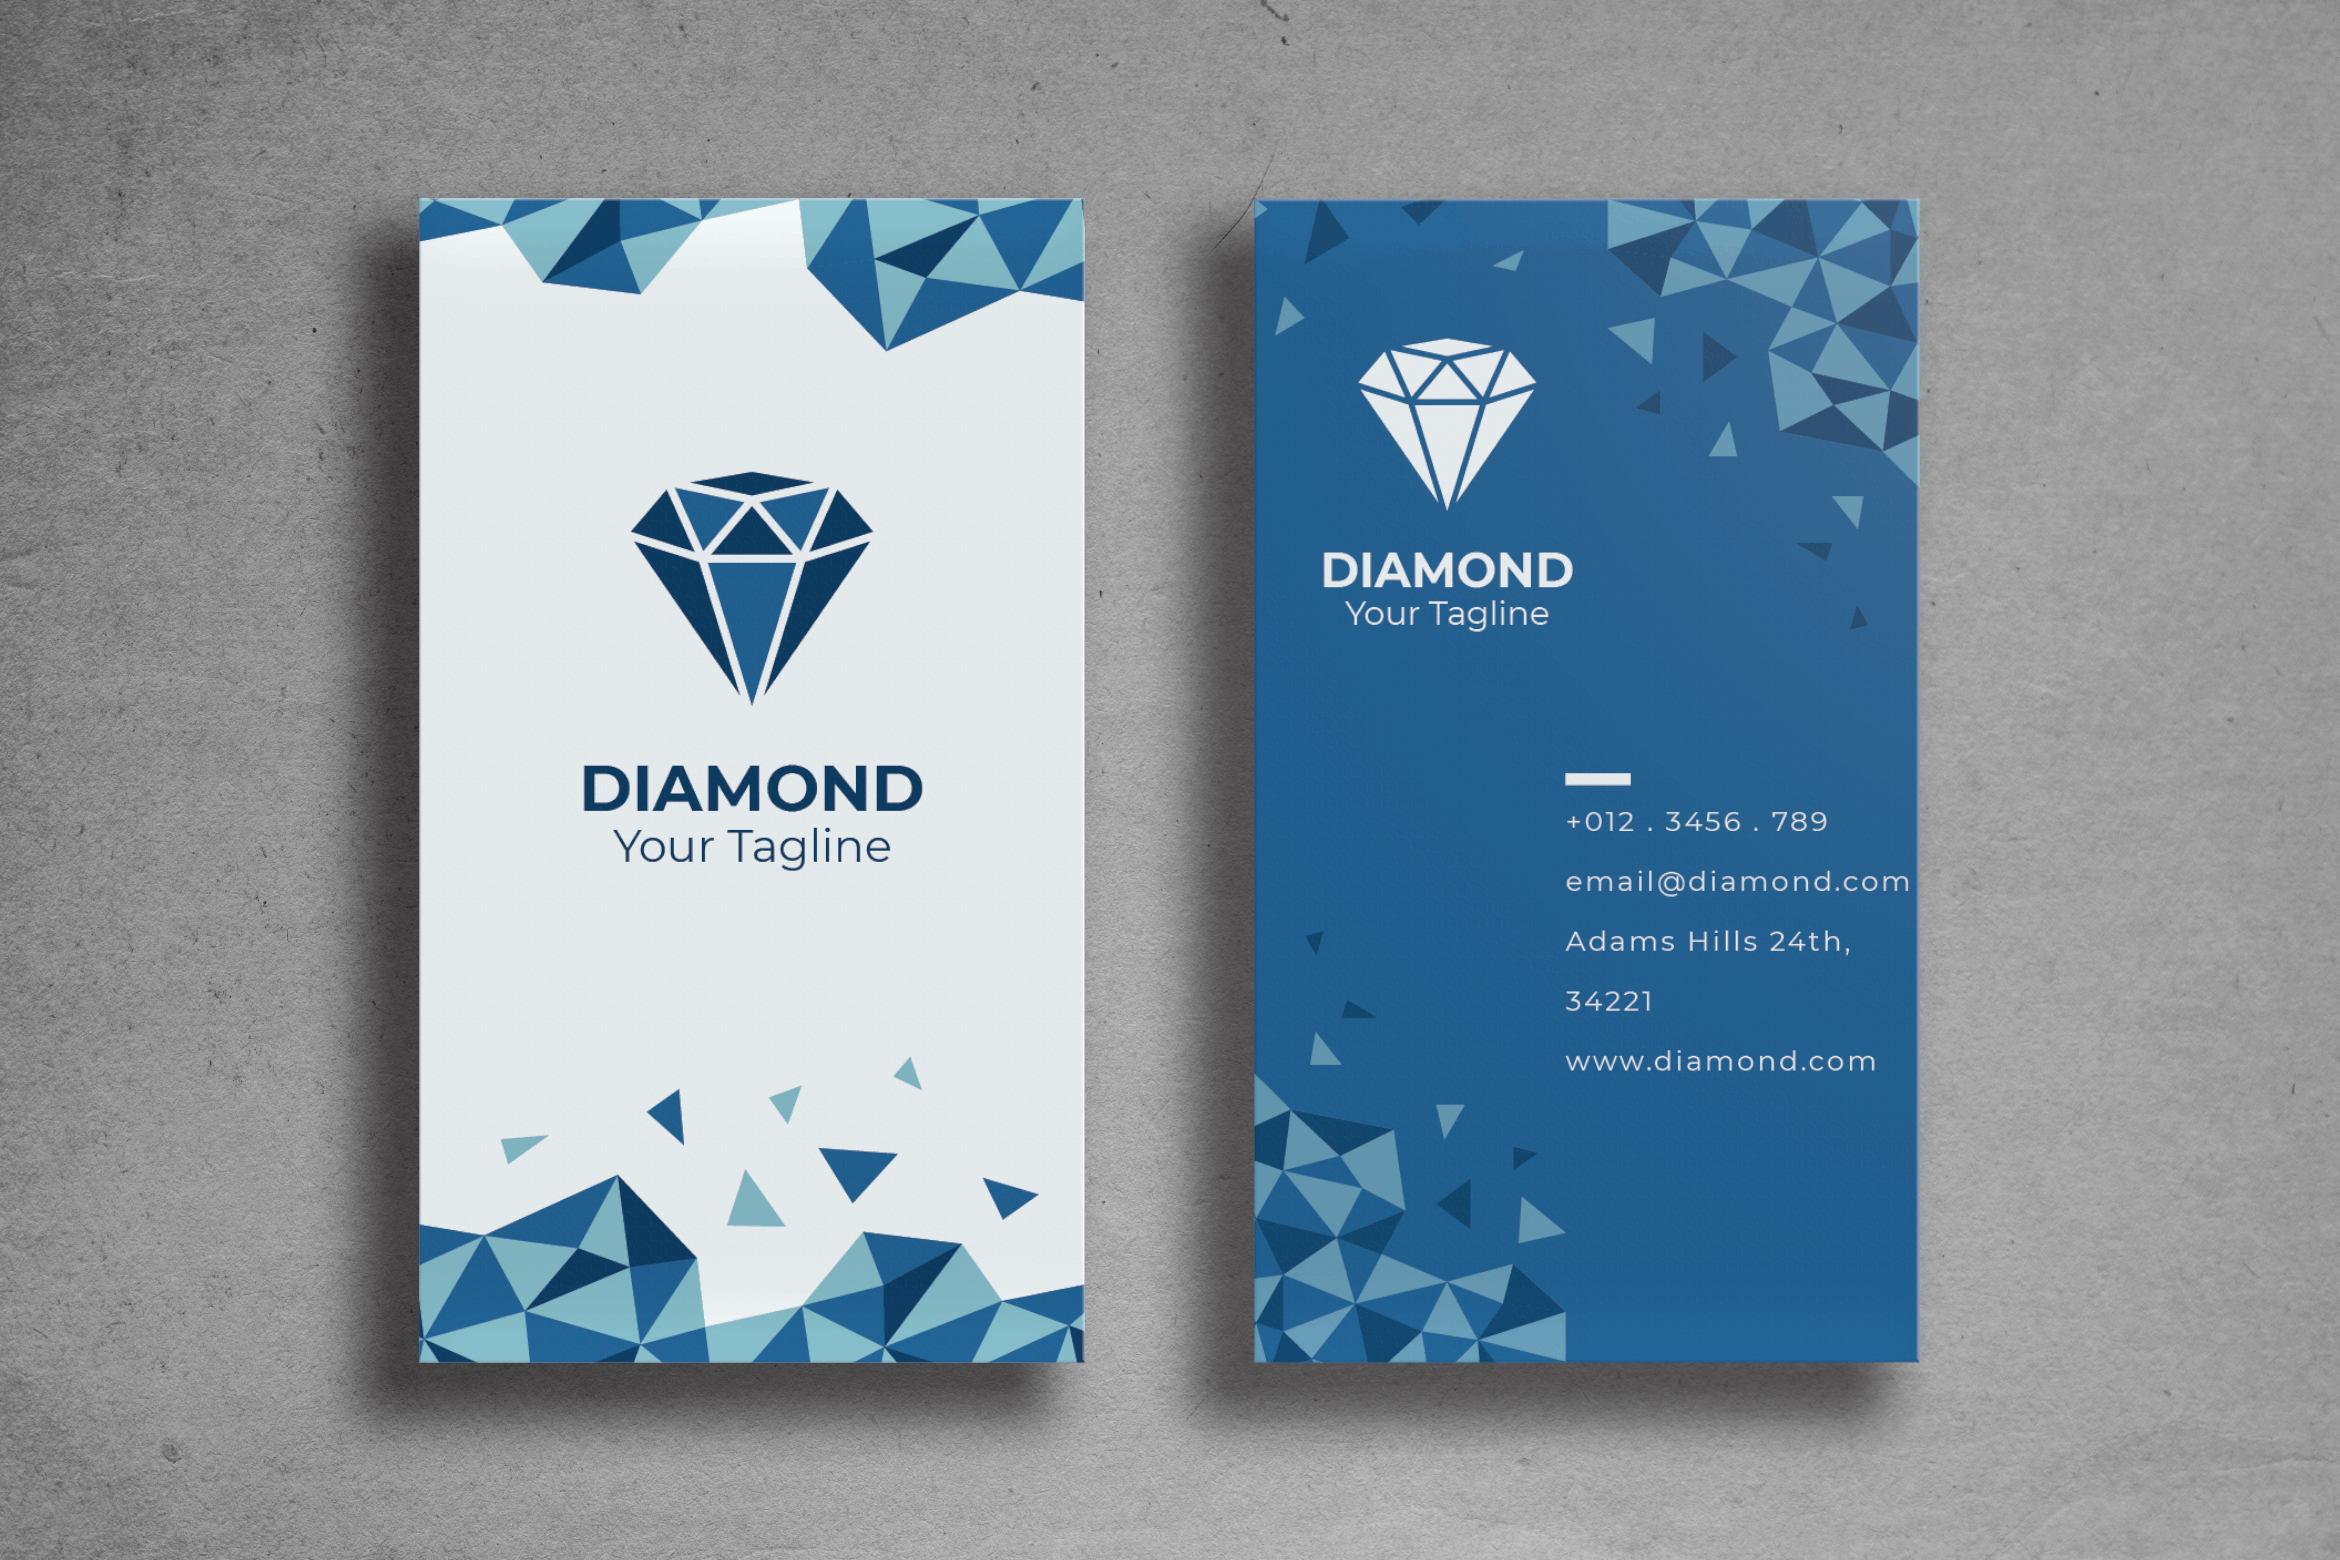 Business Card - Diamond Store Brand